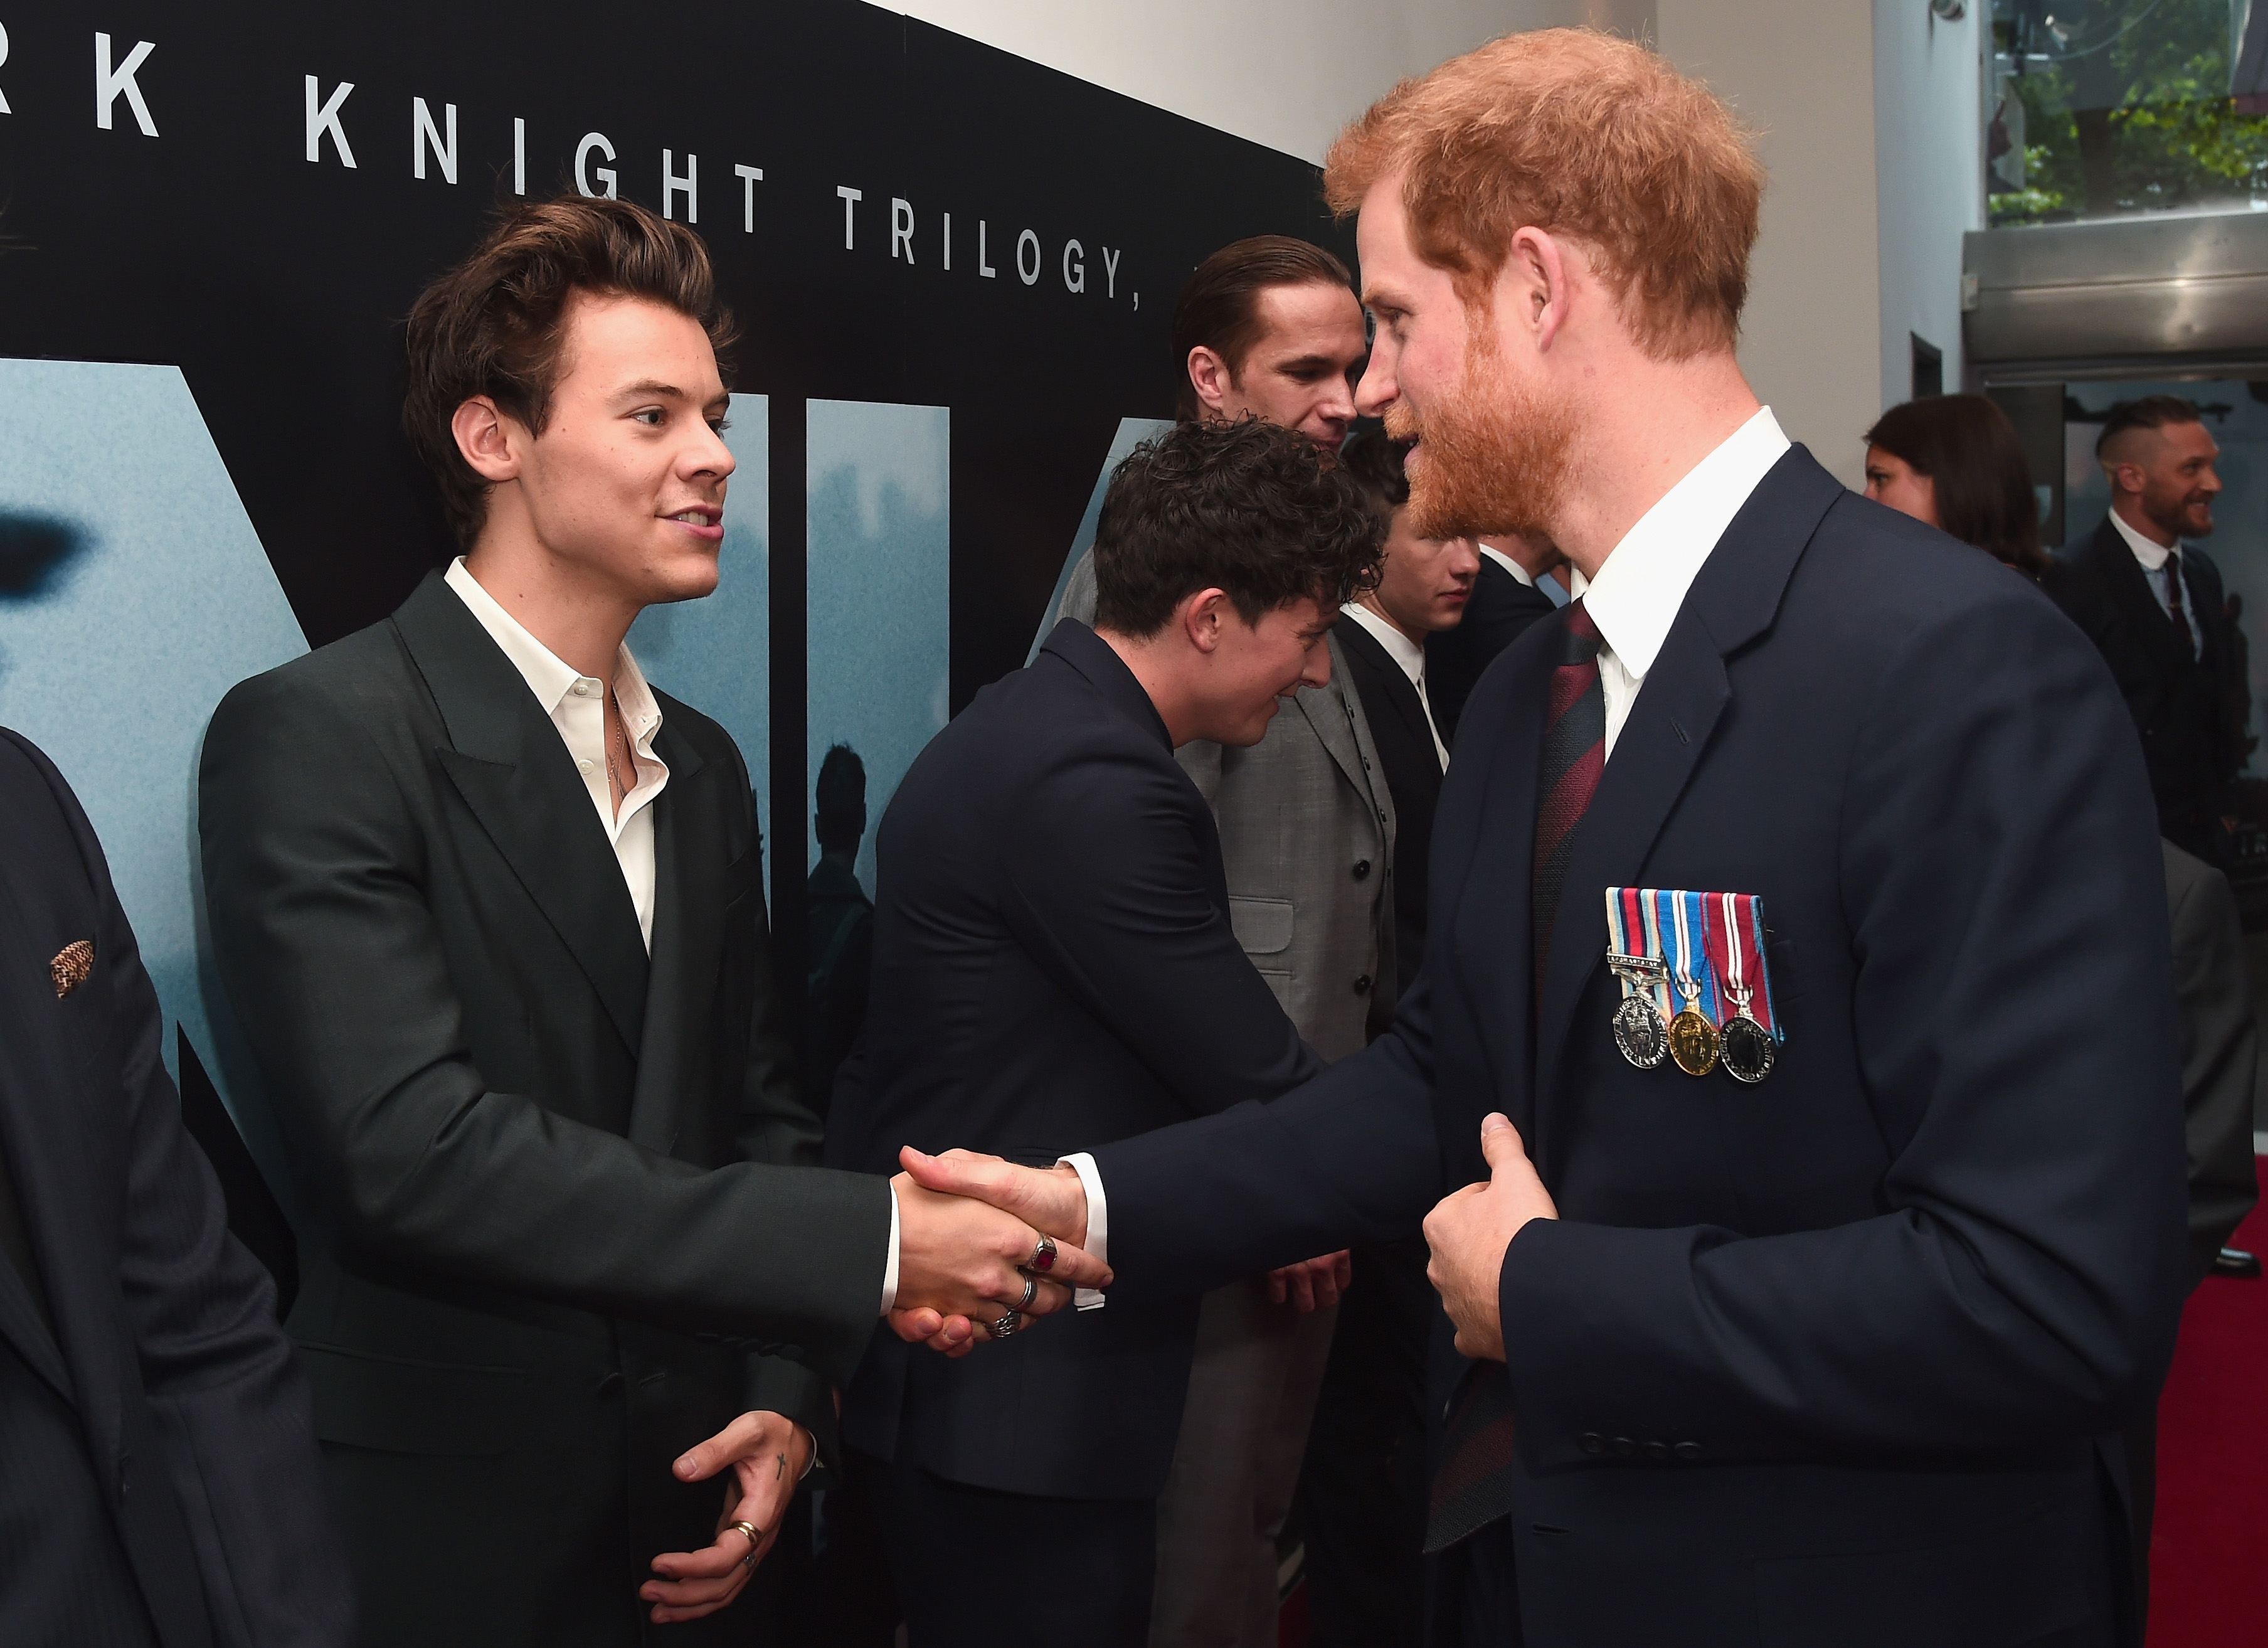 LONDON, ENGLAND - JULY 13:  Actor Harry Styles and Prince Harry attend the 'Dunkirk' World Premiere at Odeon Leicester Square on July 13, 2017 in London, England.   (Photo by Eamonn M. McCormack - WPA Pool/Getty Images)